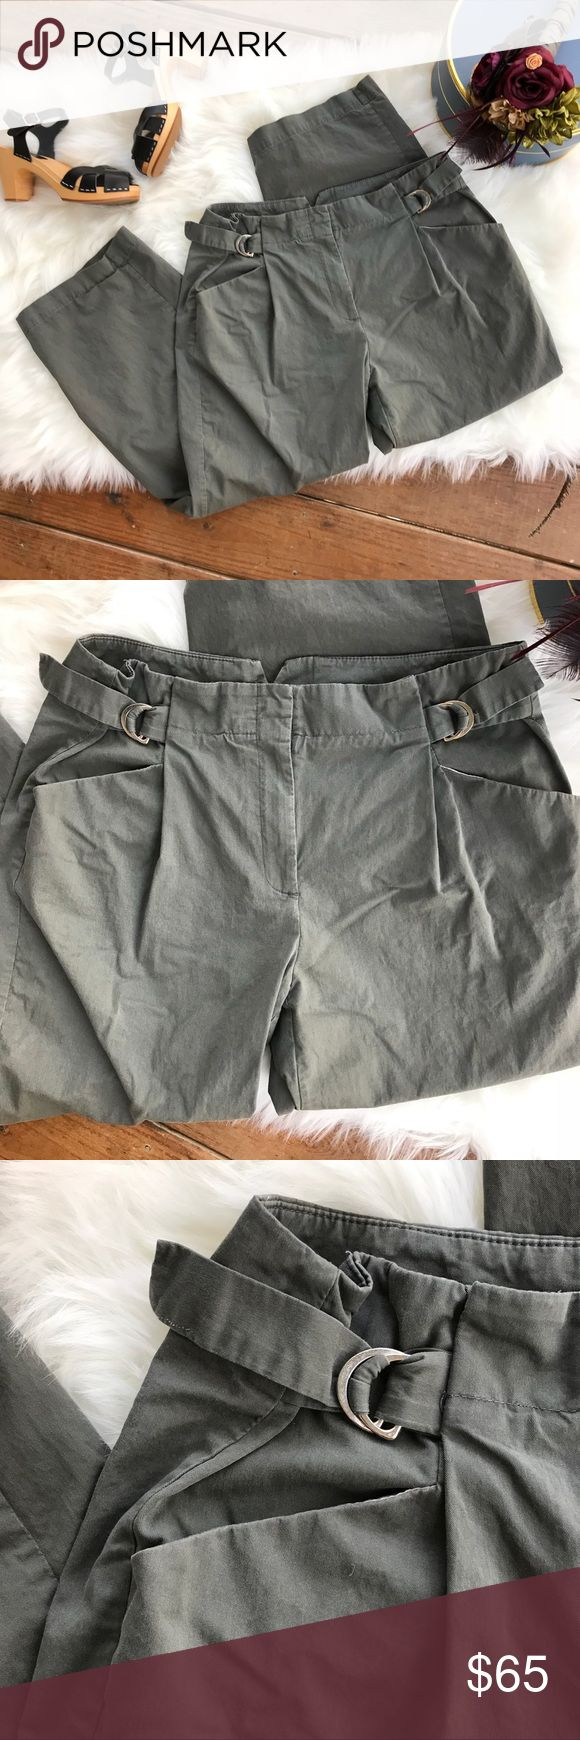 """Theory Pants With Adjustable Waist Buckle Theory pants with an adjustable waist buckle. Size 8. Waist - 30"""" Rise - 11"""" Inseam - 25.5 Theory Pants Trousers"""